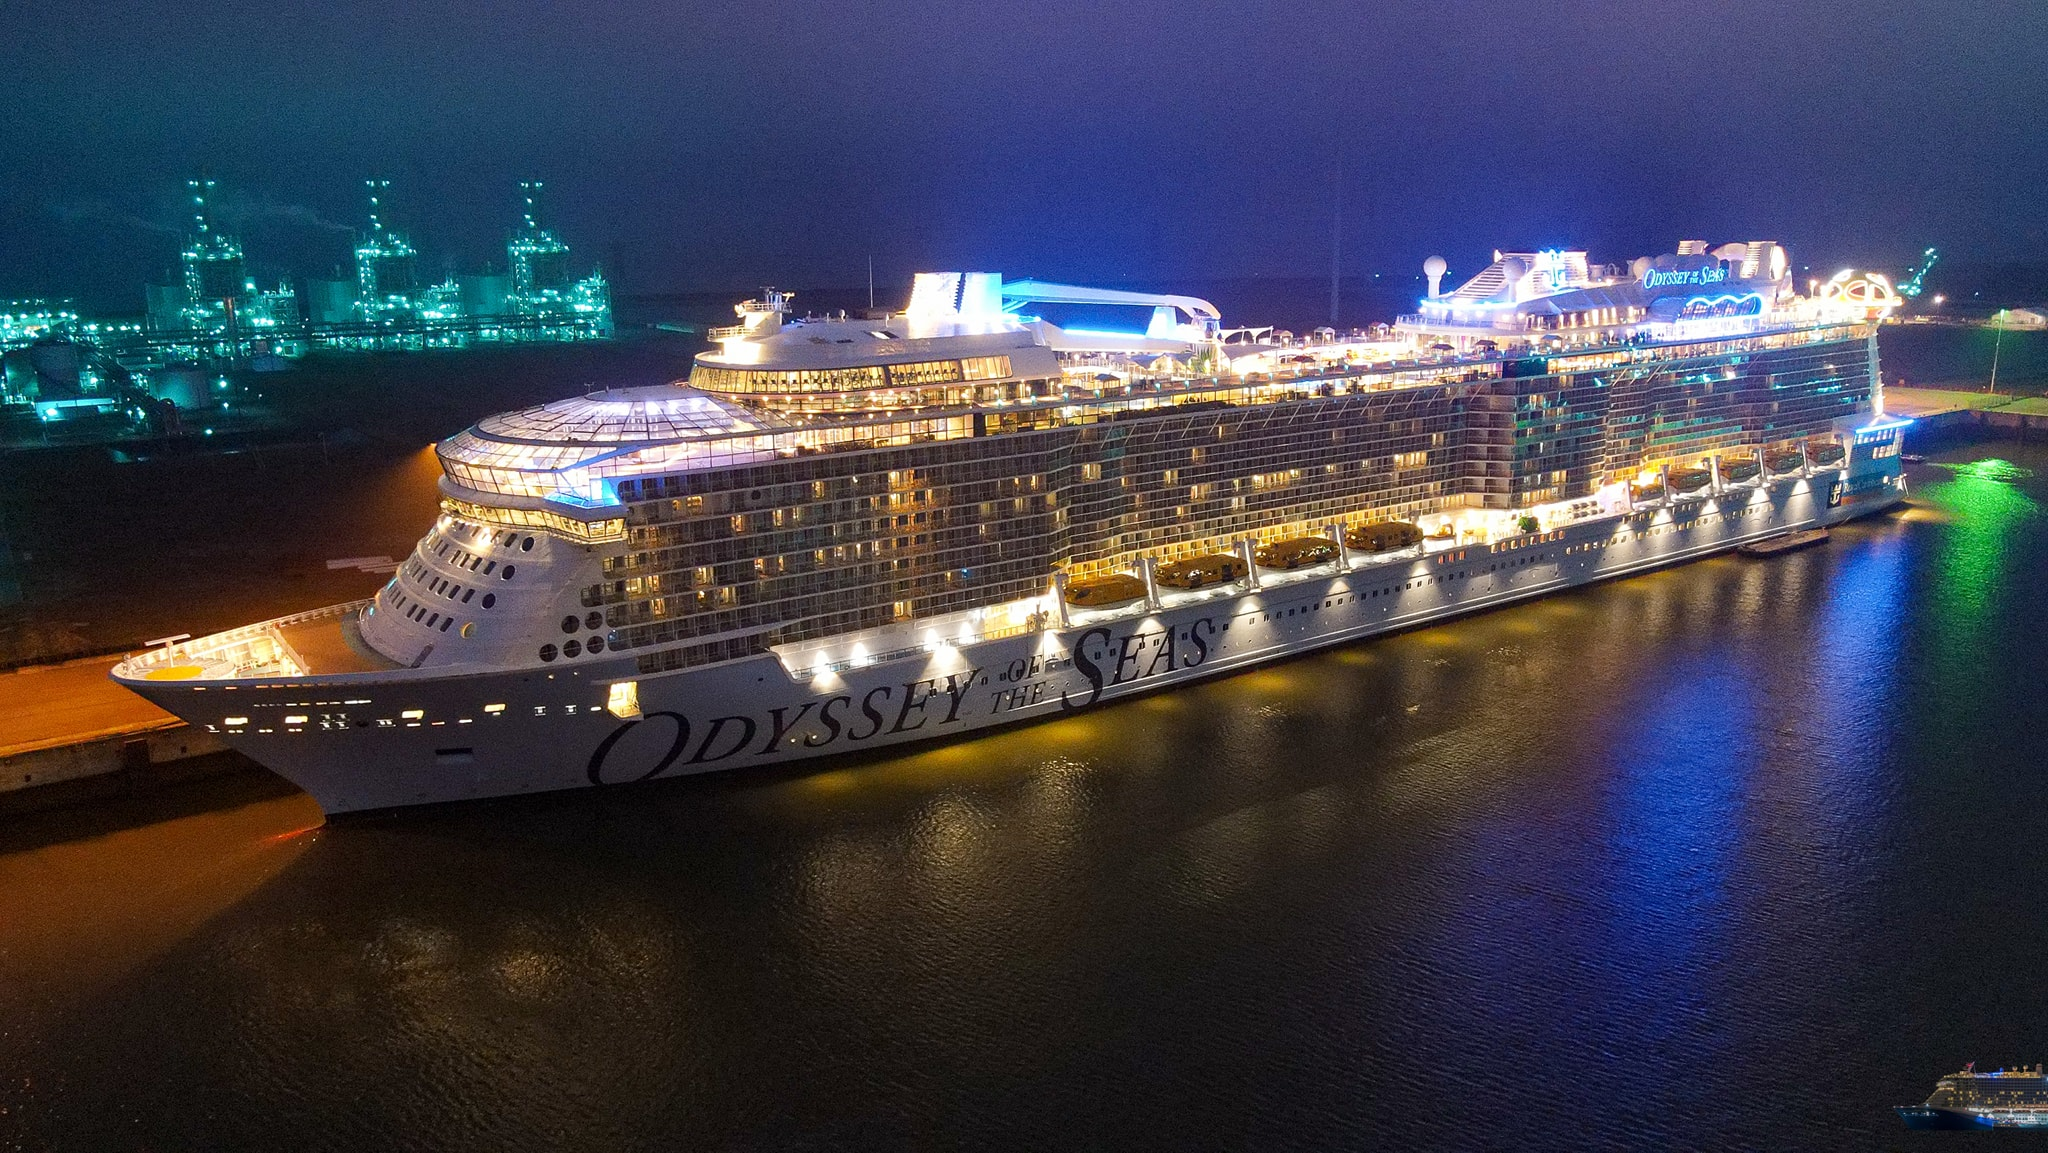 First Pictures Onboard the Odyssey of the Seas - Cruise Spotlight